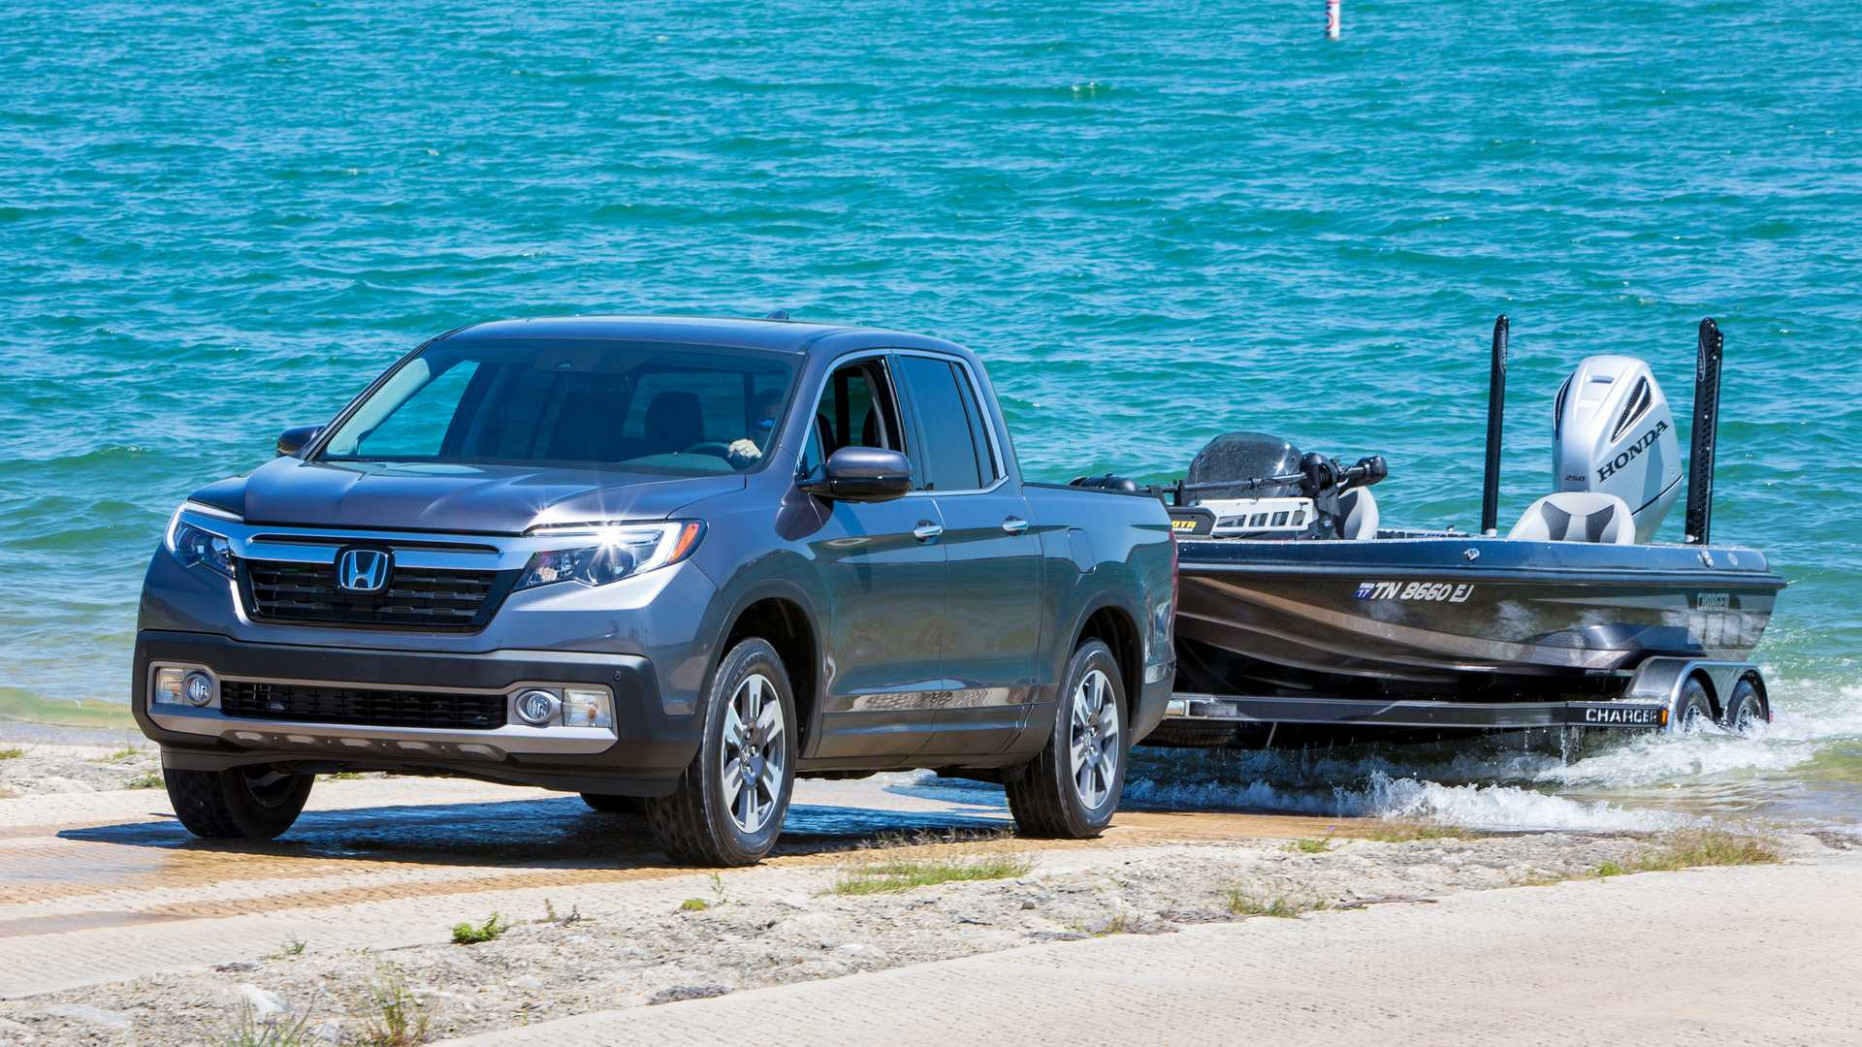 8 Honda Ridgeline Upgraded With 8-Speed Automatic And More